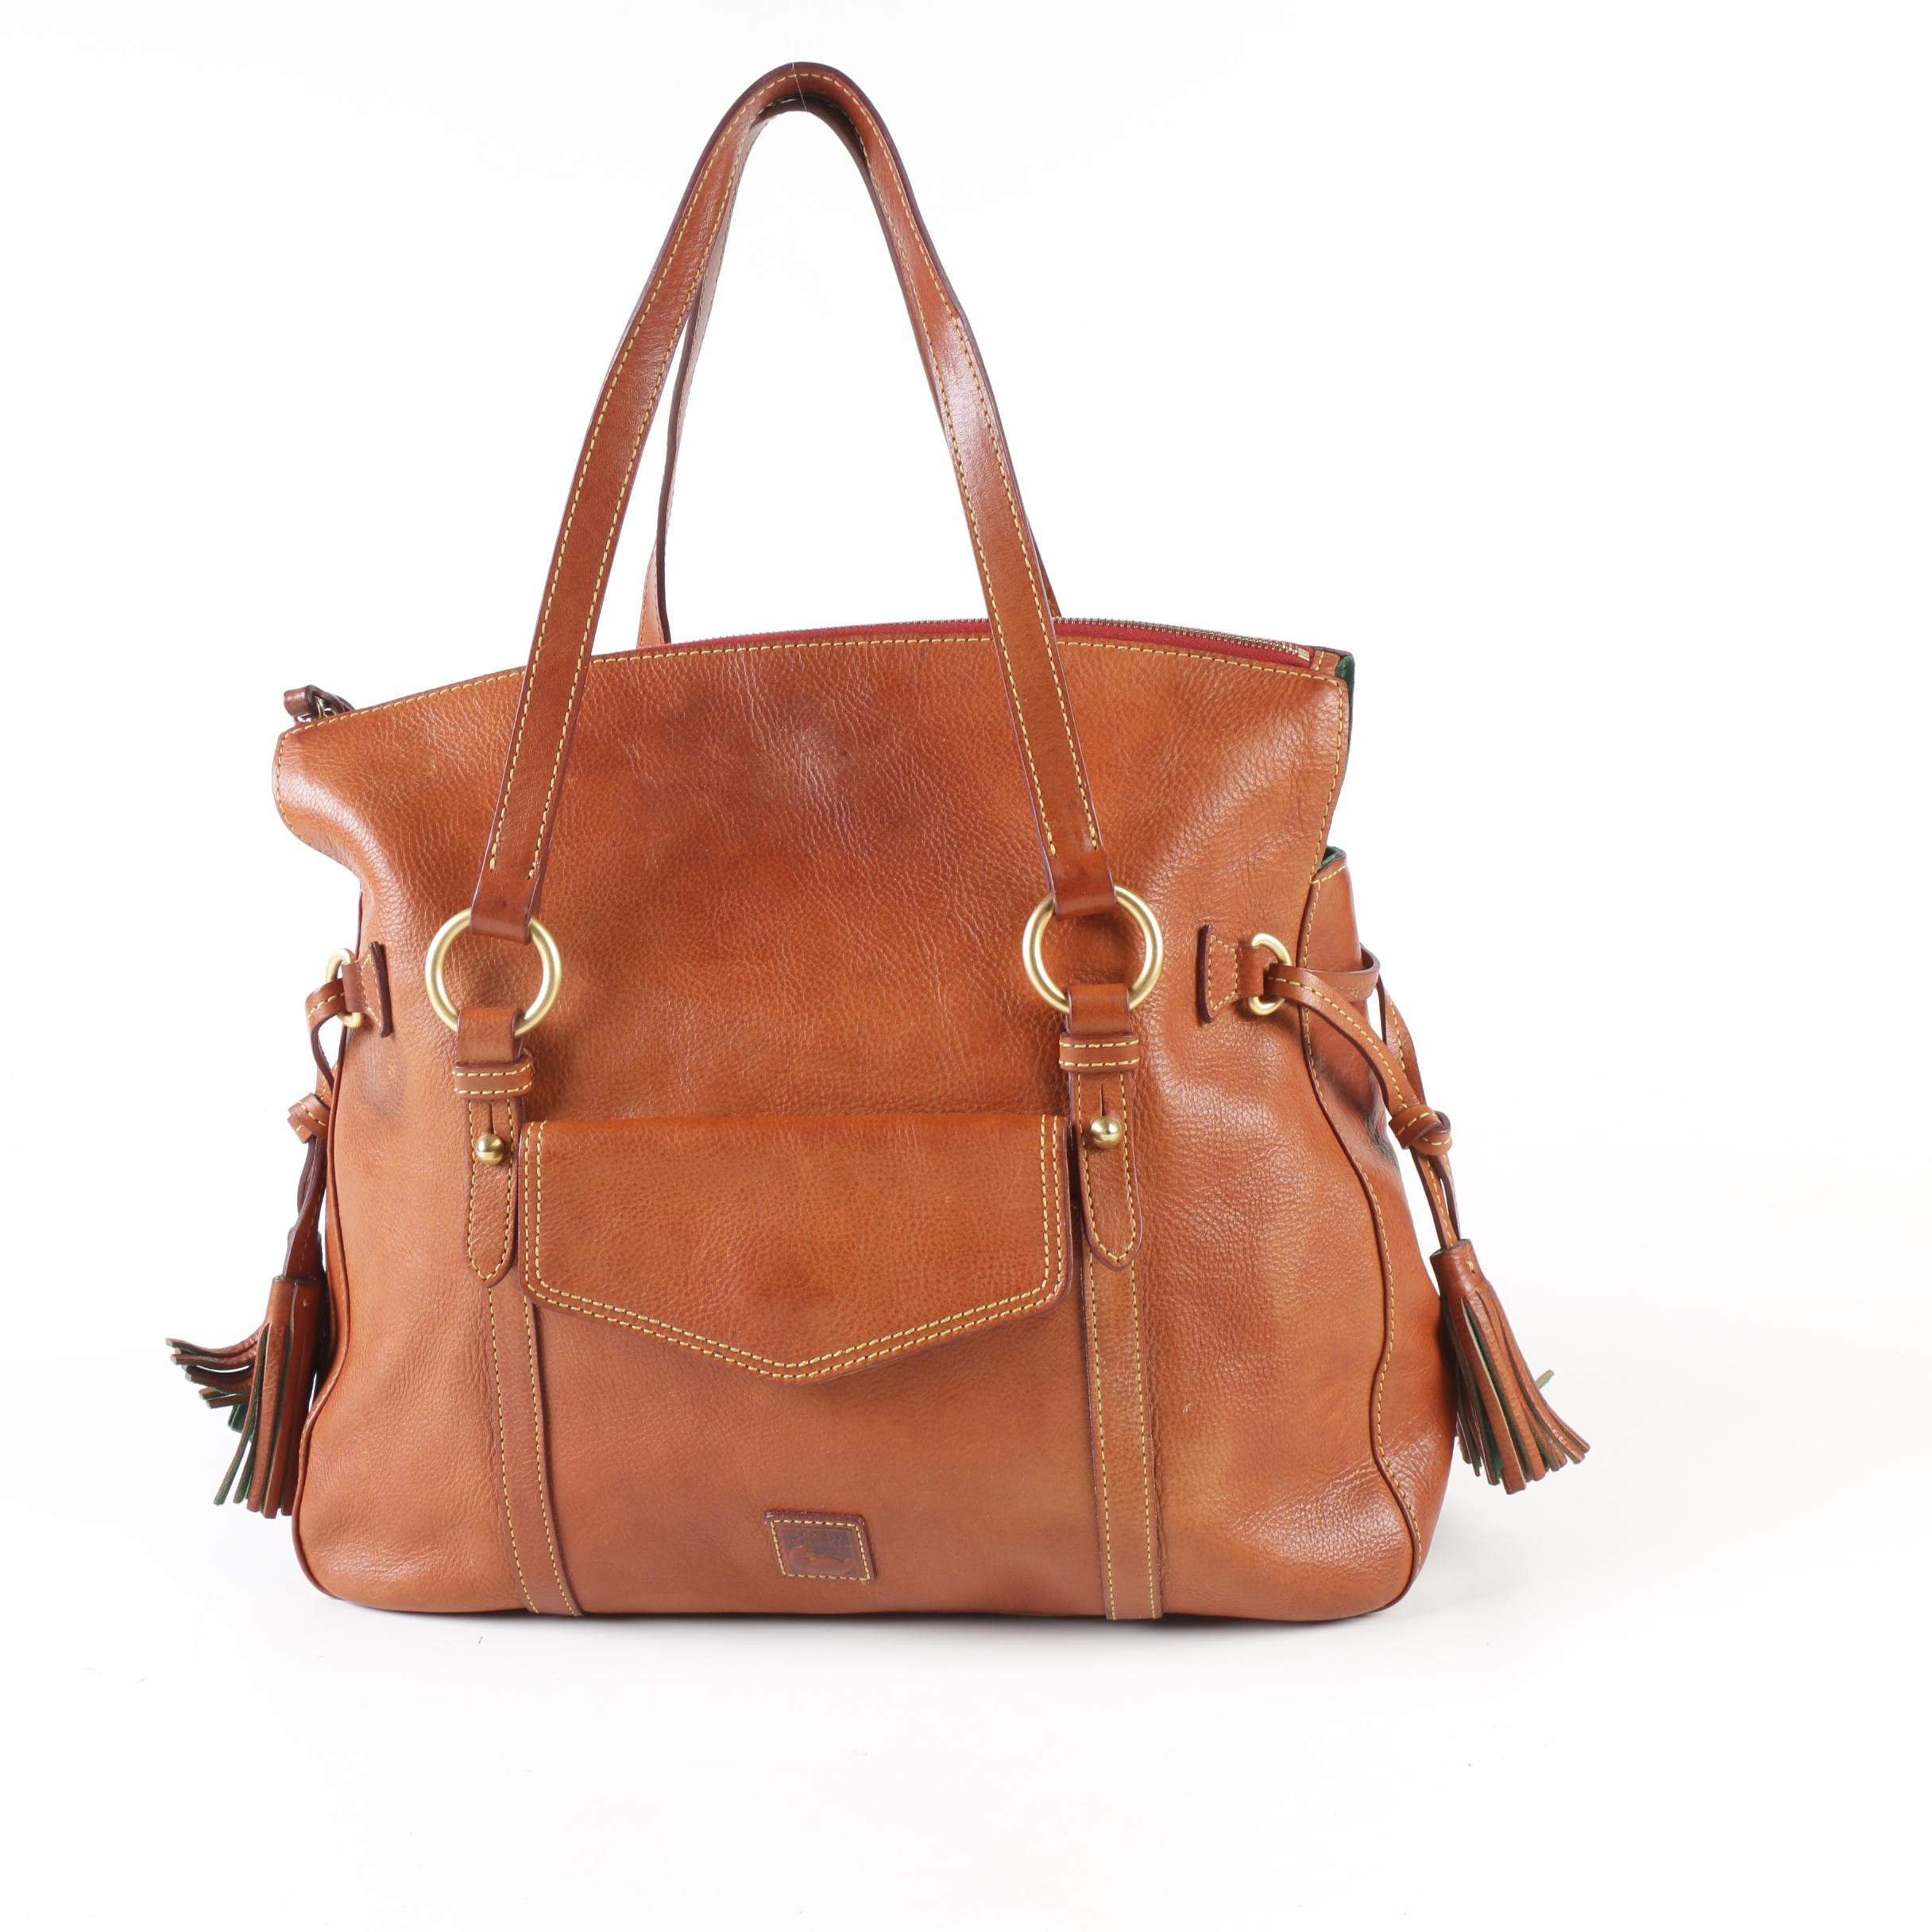 Dooney & Bourke Cognac Brown Leather Satchel